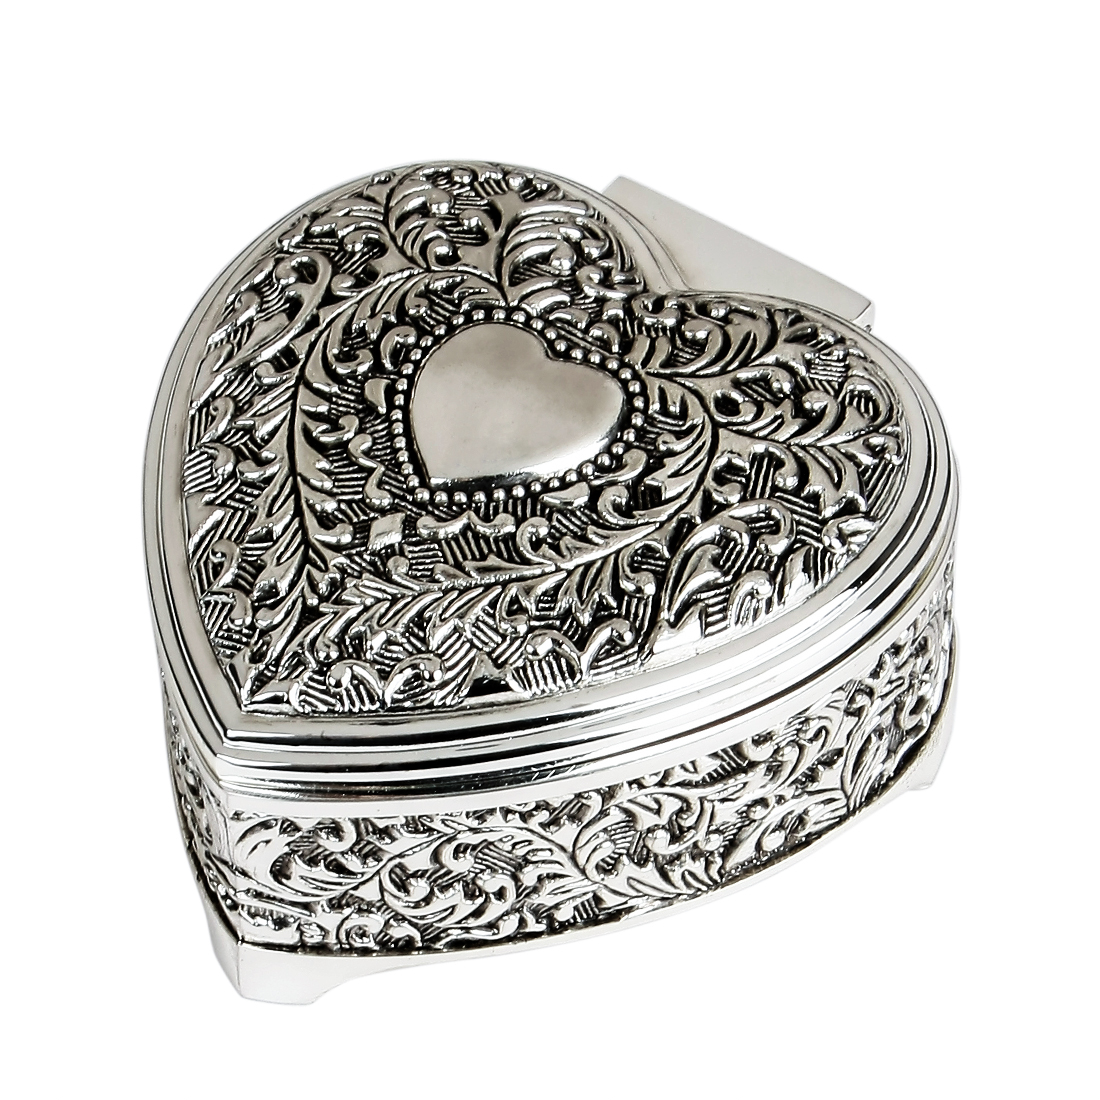 Heart Shaped Wedding Ring Jewelry Engraving Storage Box Case Organizer